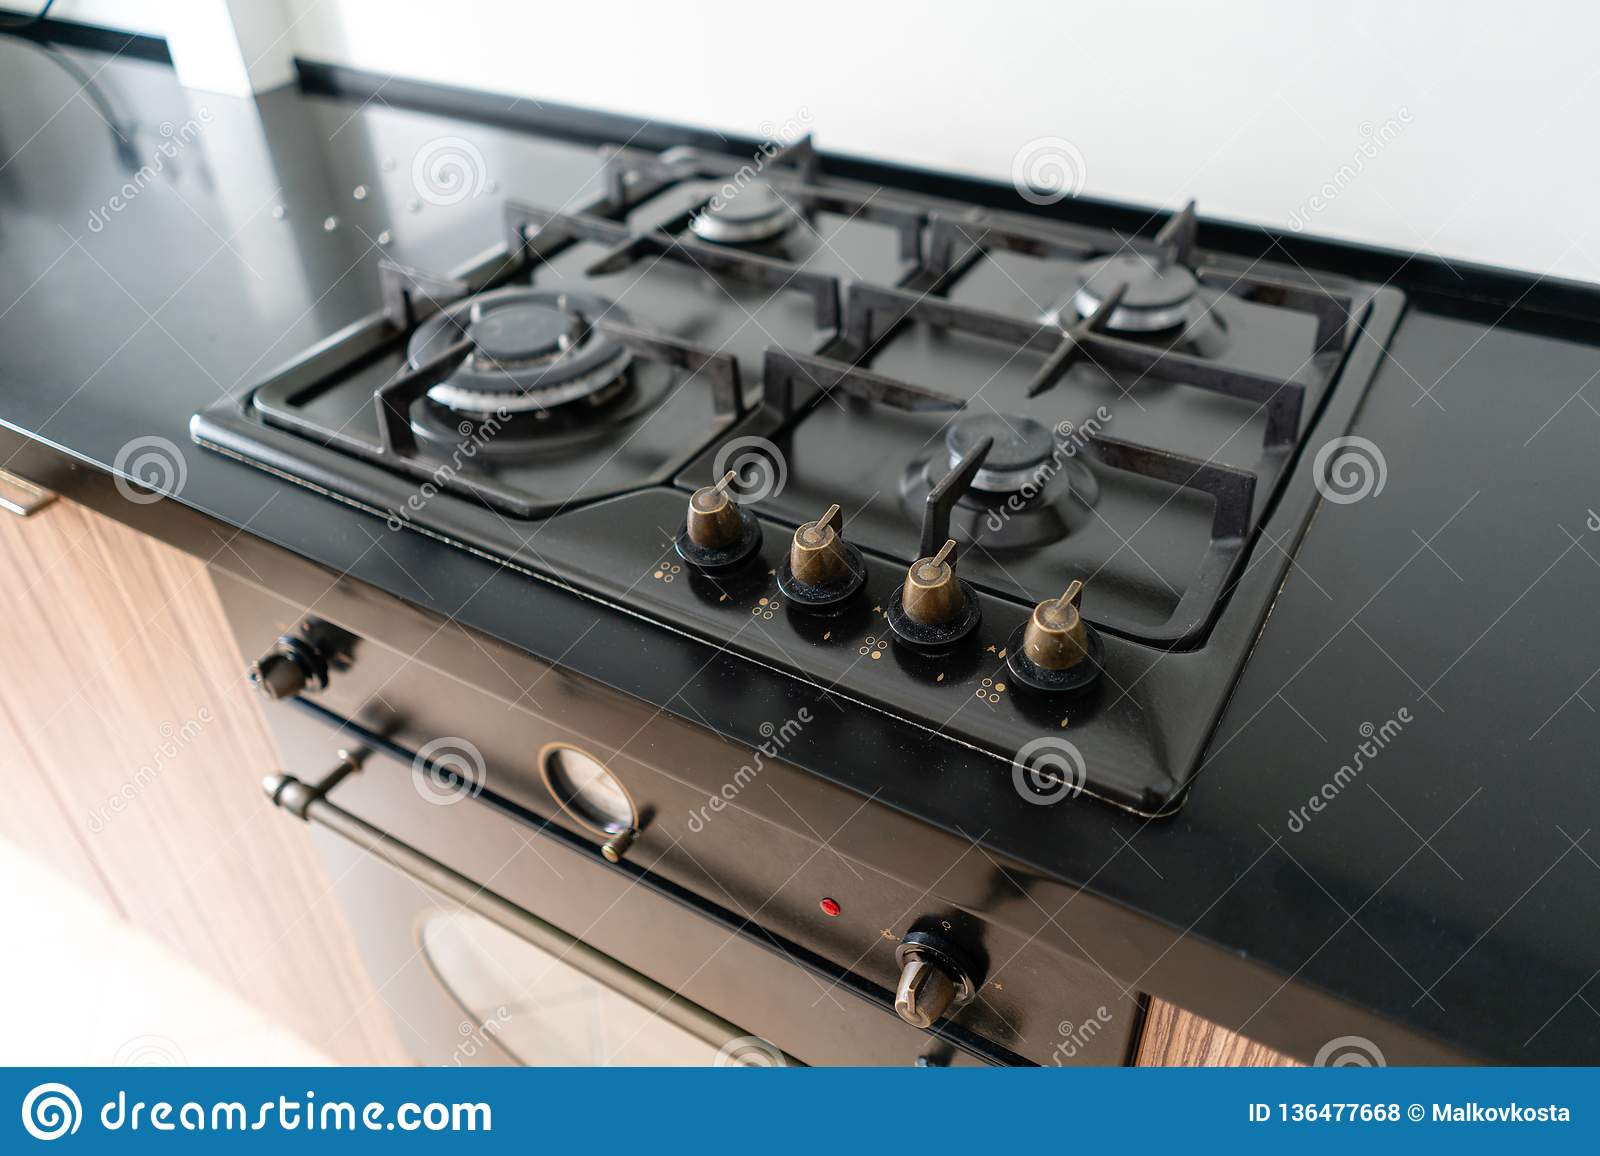 Modern Gas Burner And Hob On A Kitchen Range. Dark Black ...